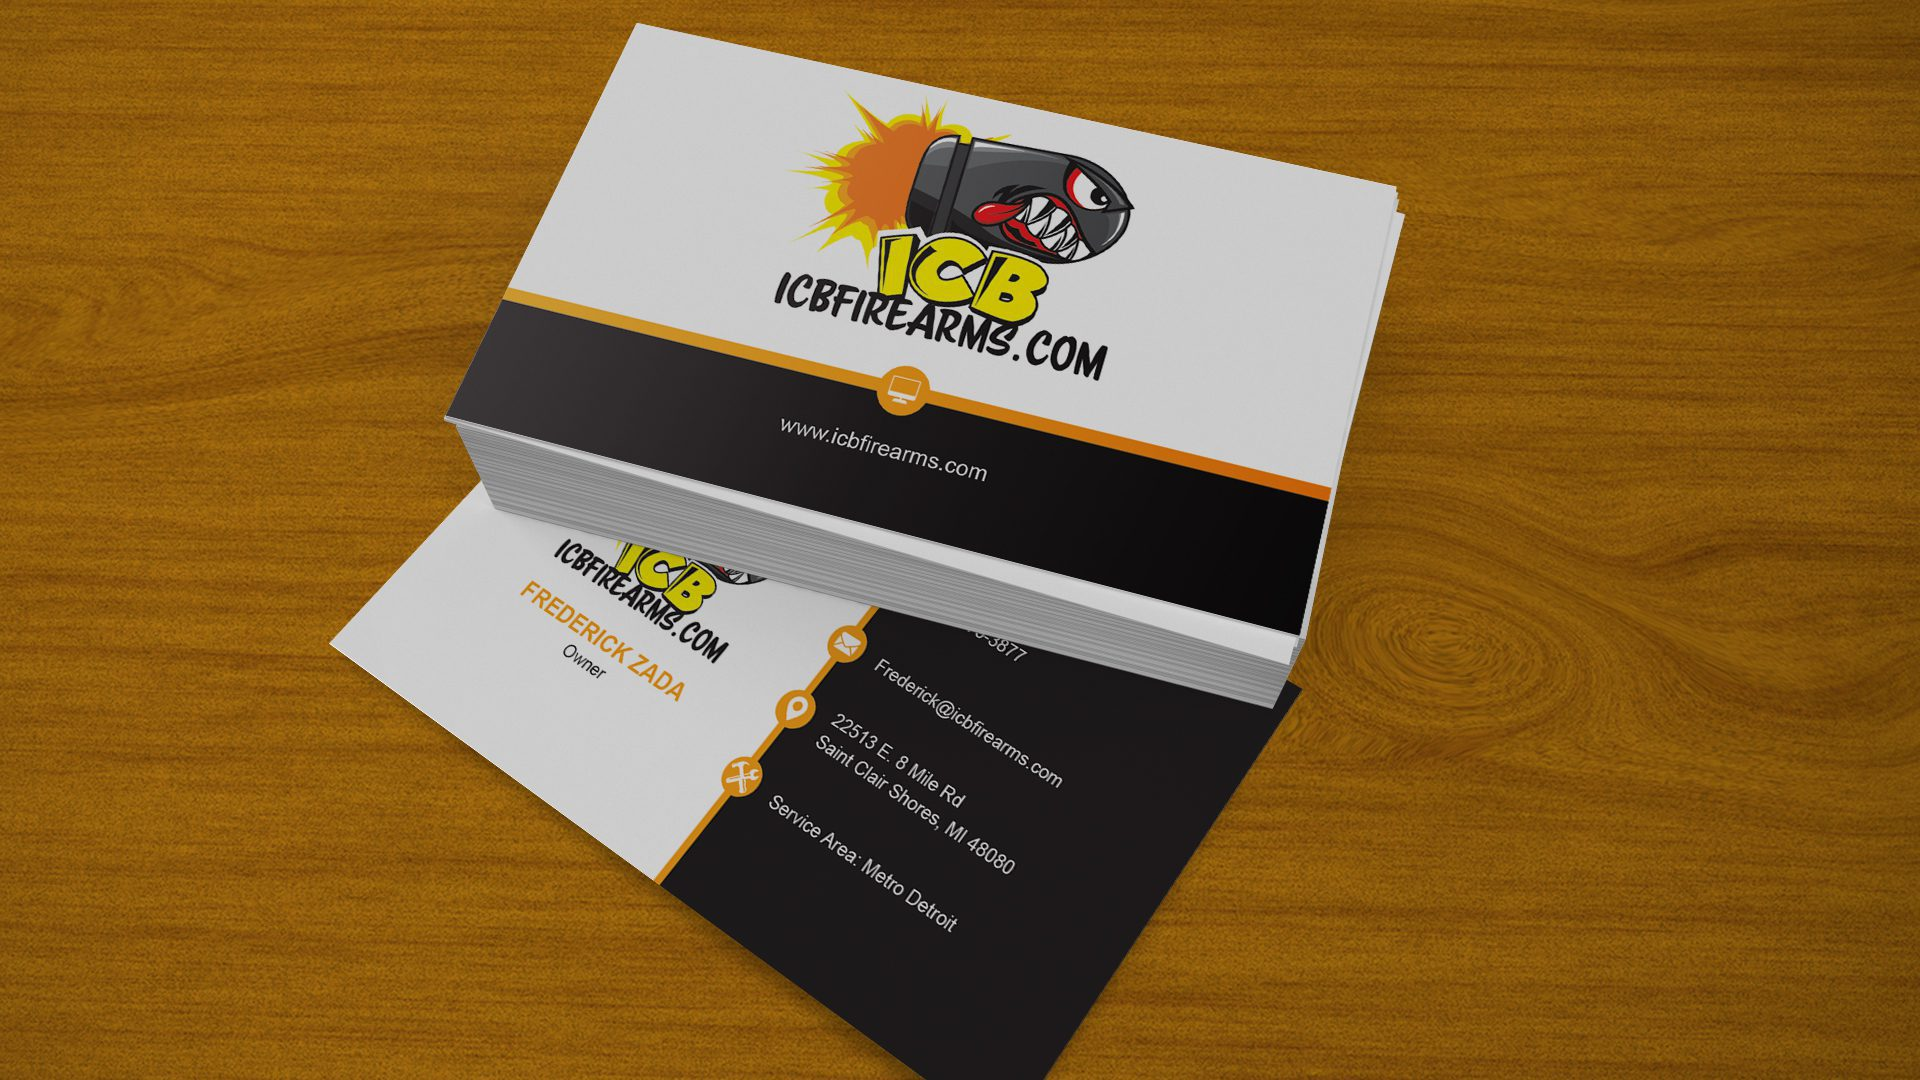 ICB Firearms - Business Cards Mockup 01